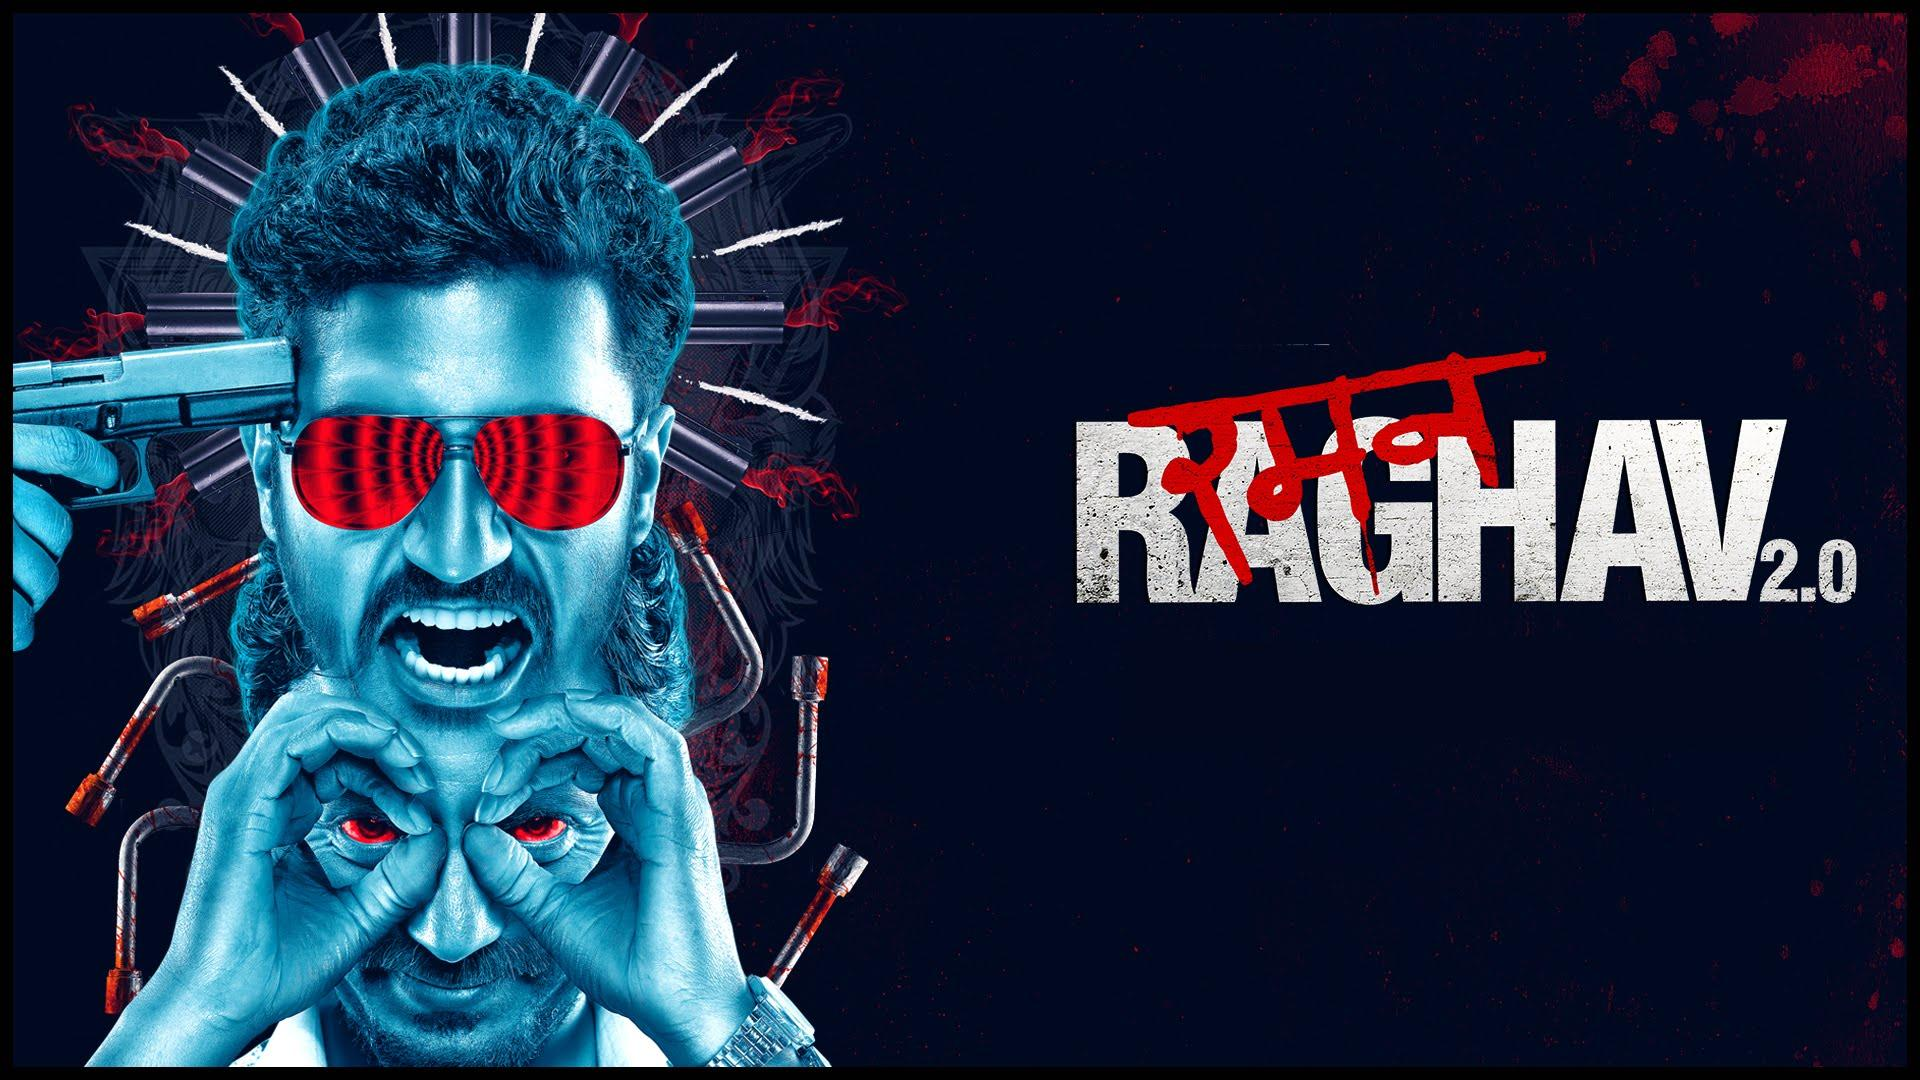 Raman Raghav 2.0 Movie Poster Full HD Wallpaper